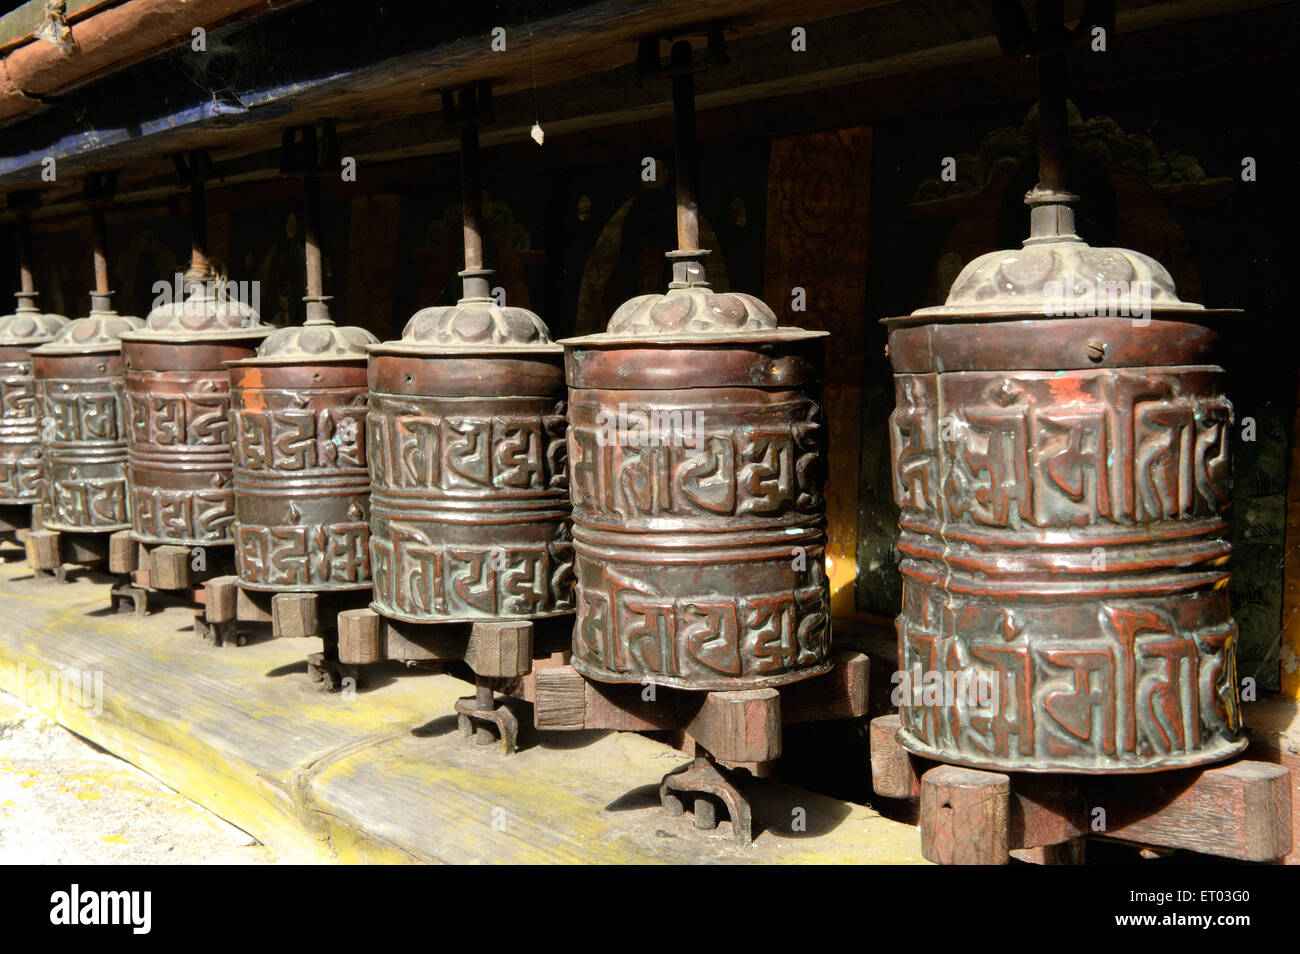 Prayer wheels inscribed with mantra in Bagarchhap ; Nepal - Stock Image